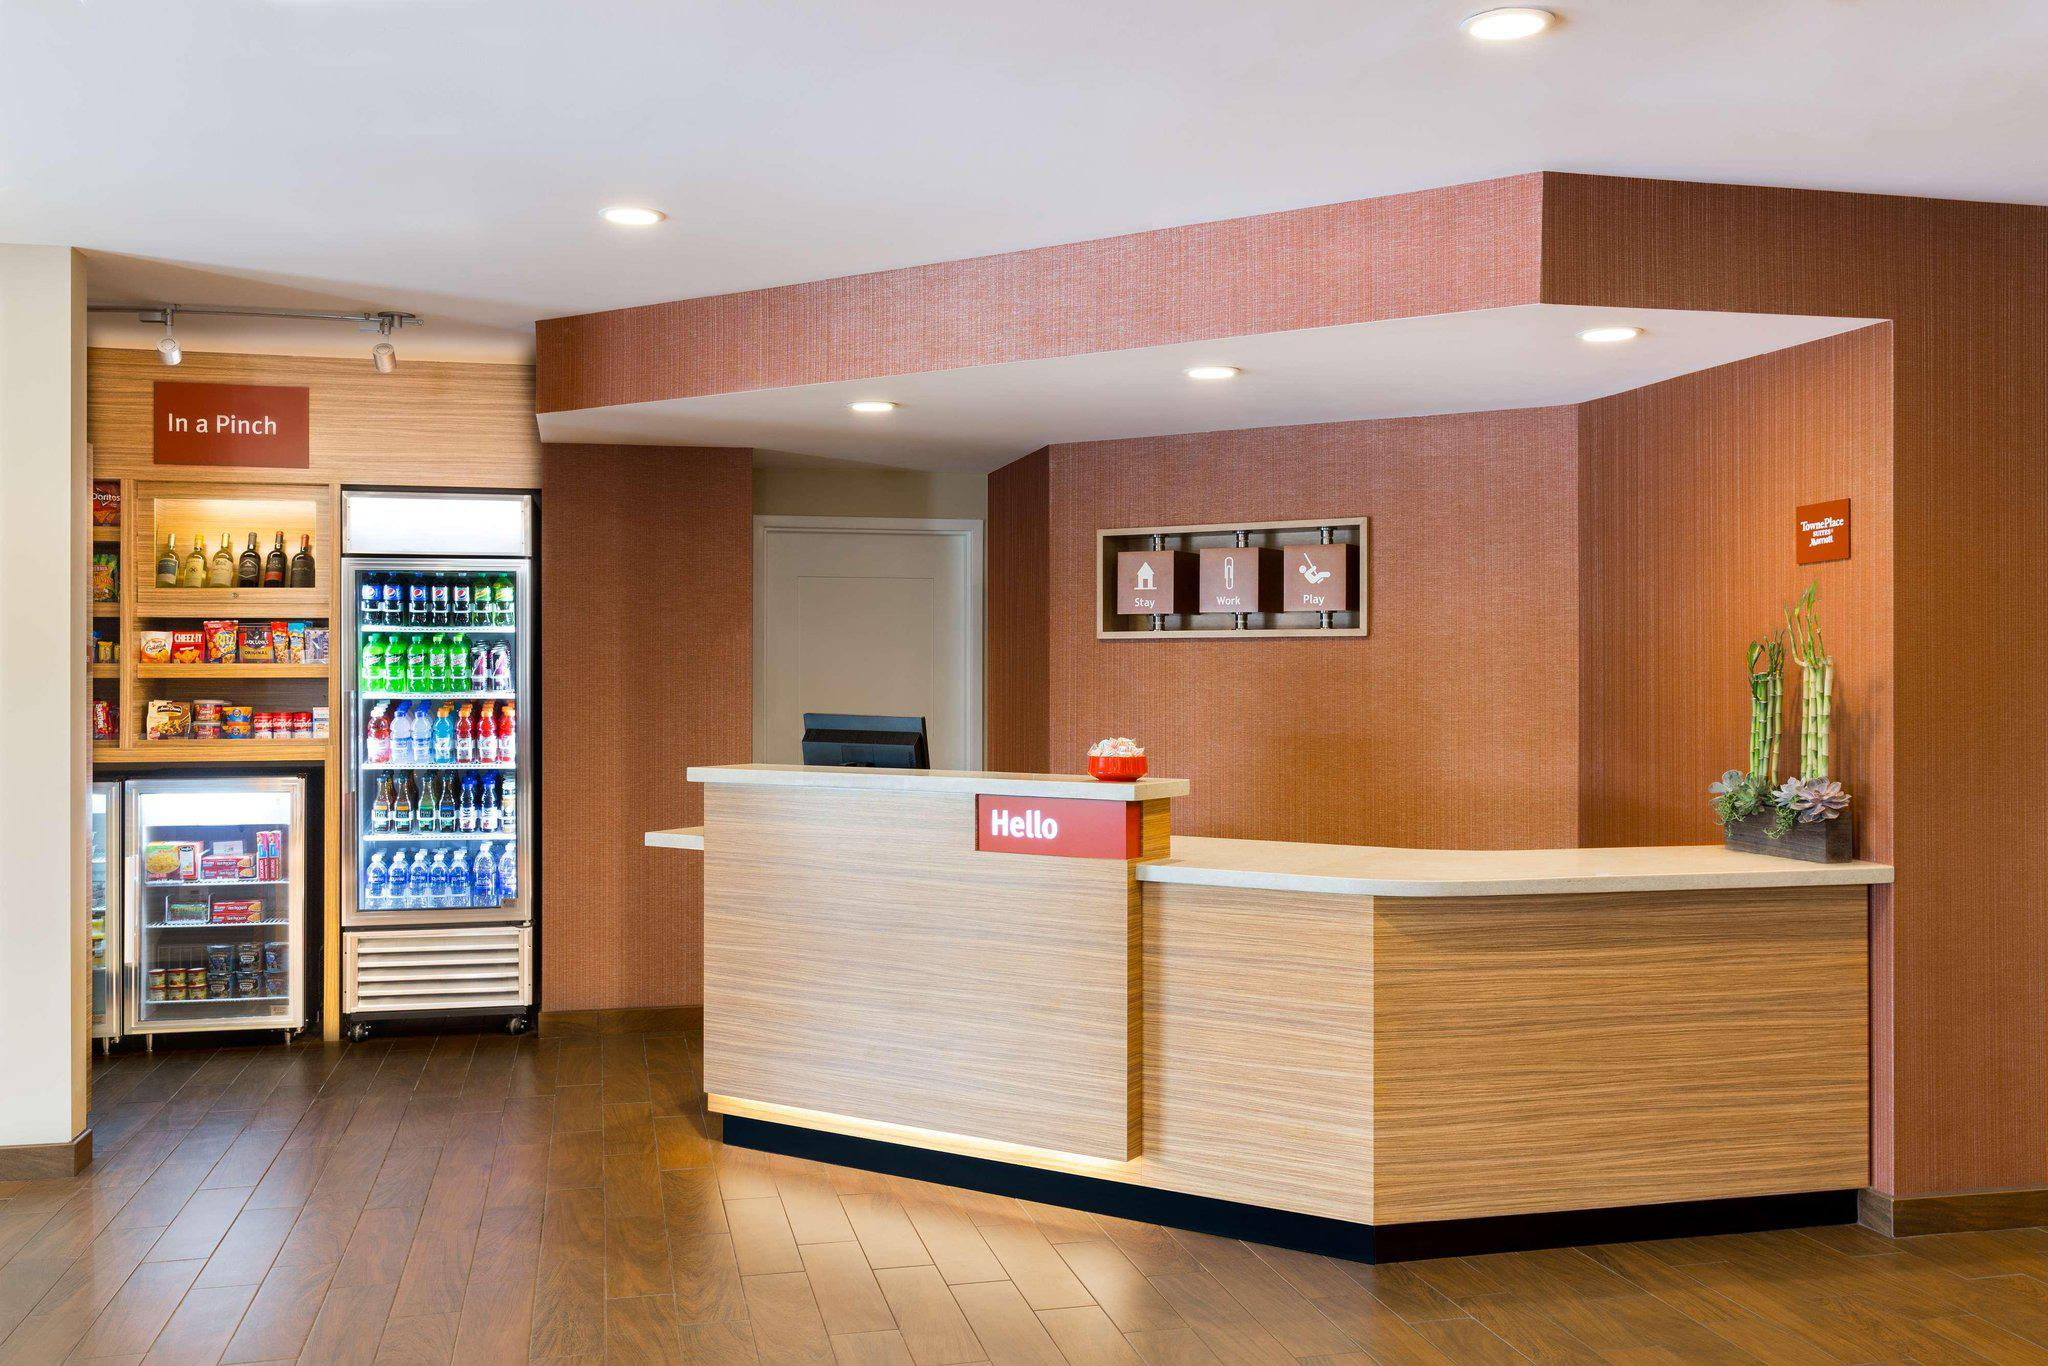 TownePlace Suites by Marriott Austin South